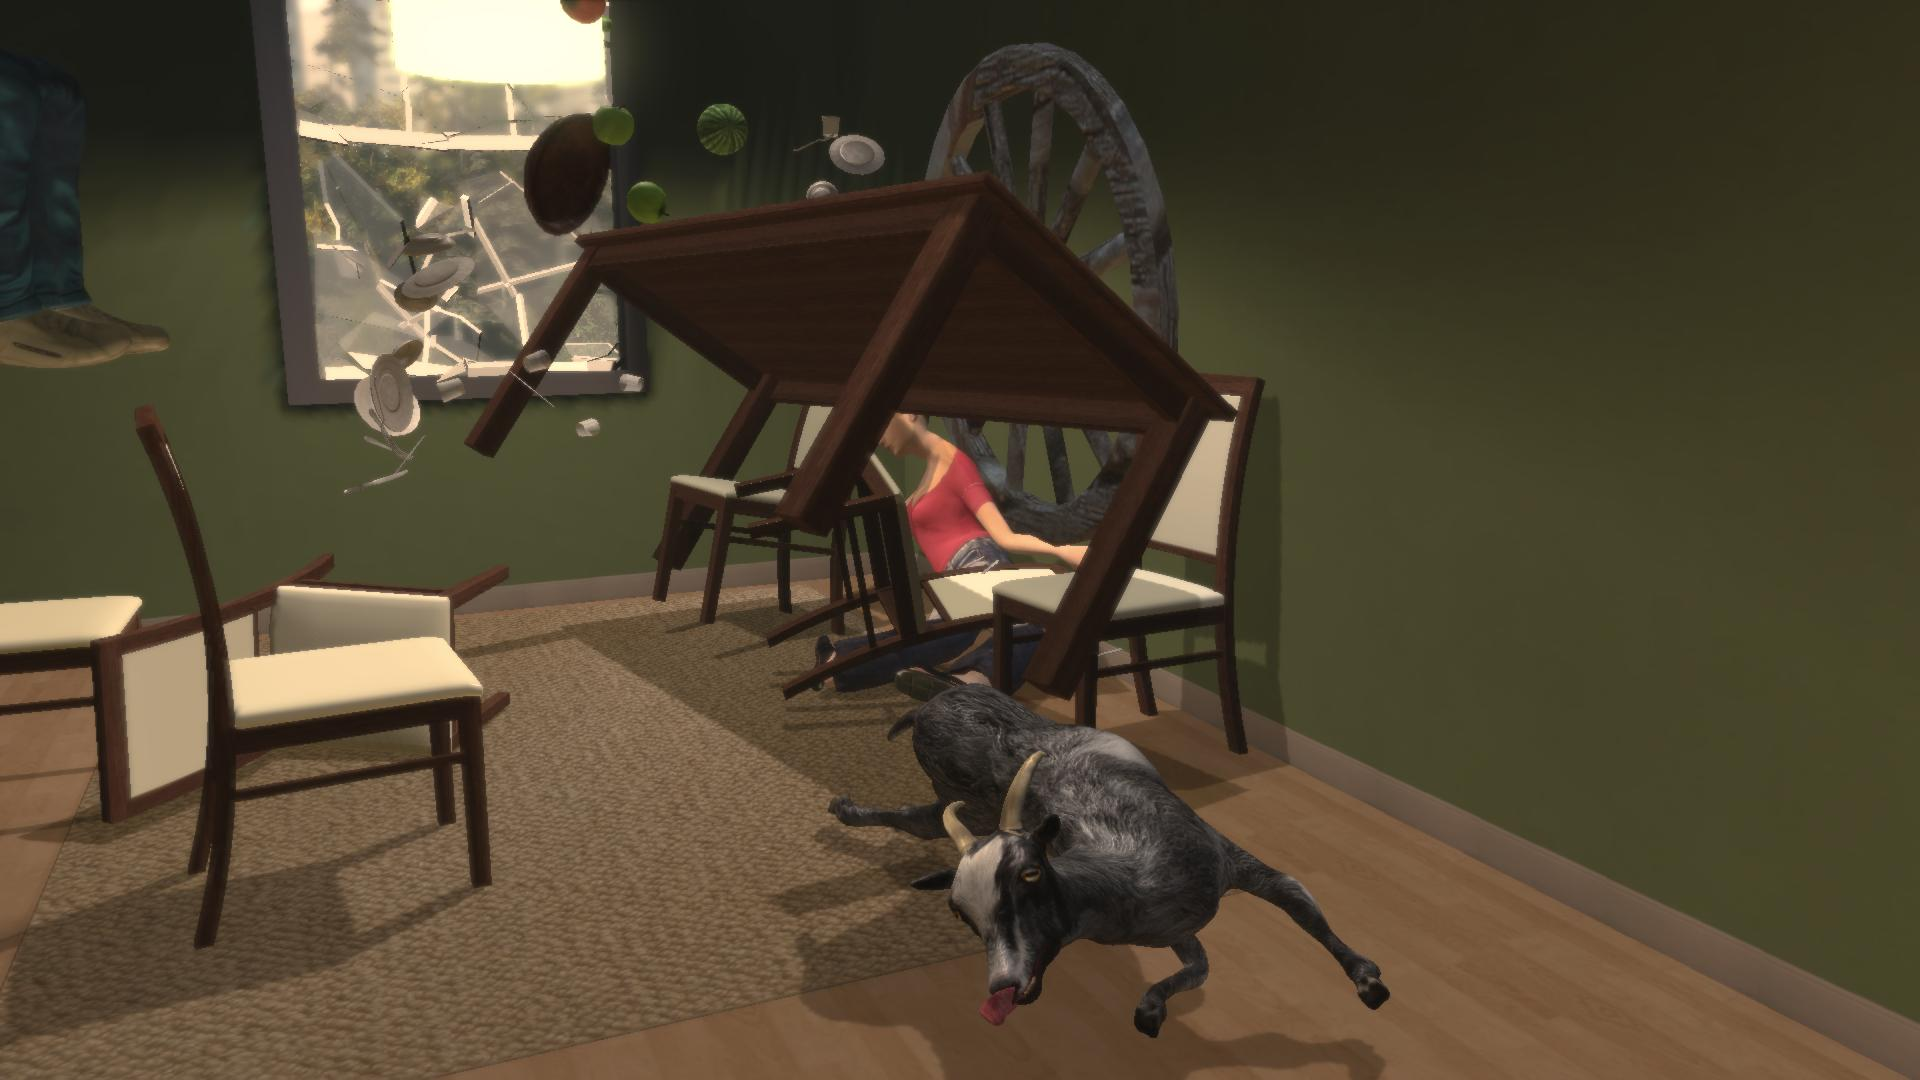 Goat Simulator is going to be a free MMO